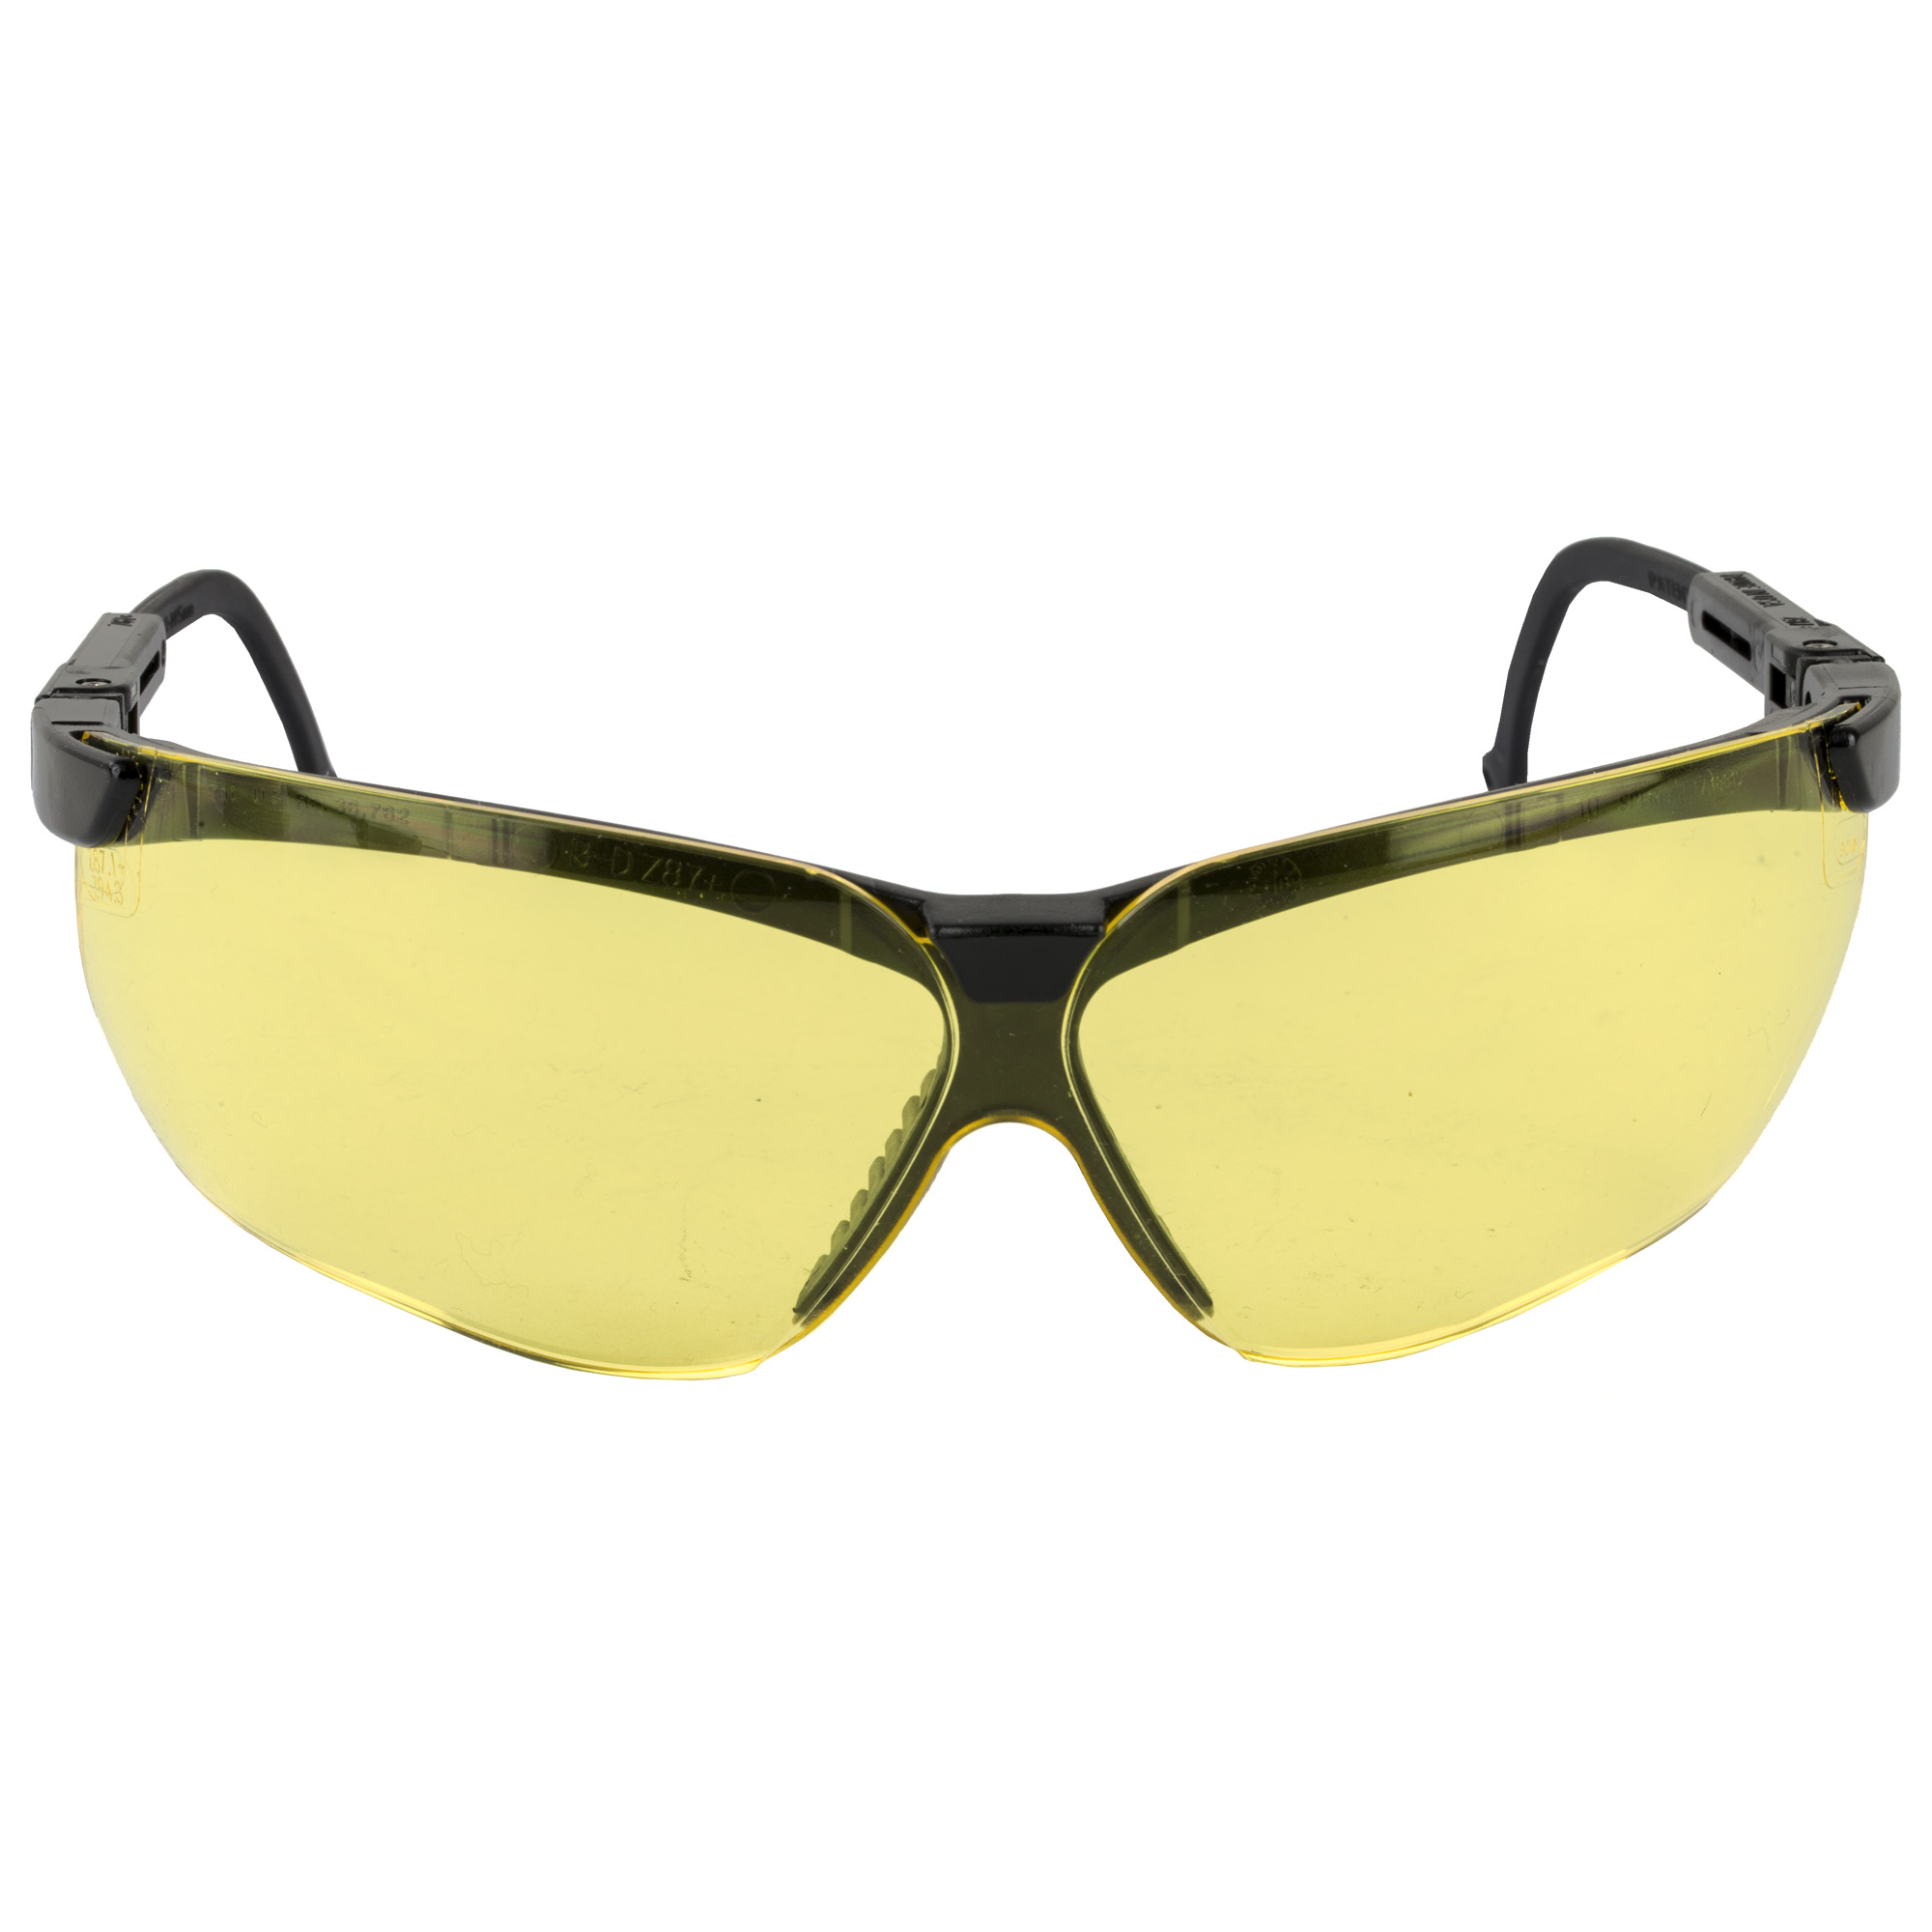 Howard Leight's Genesis features a wrap-around lens for uncompromised peripheral vision and protection. They have an adjustable temple length and lens inclination for a custom fit. A Unique ventilation channel between the frame and lens delivers superior fog control.